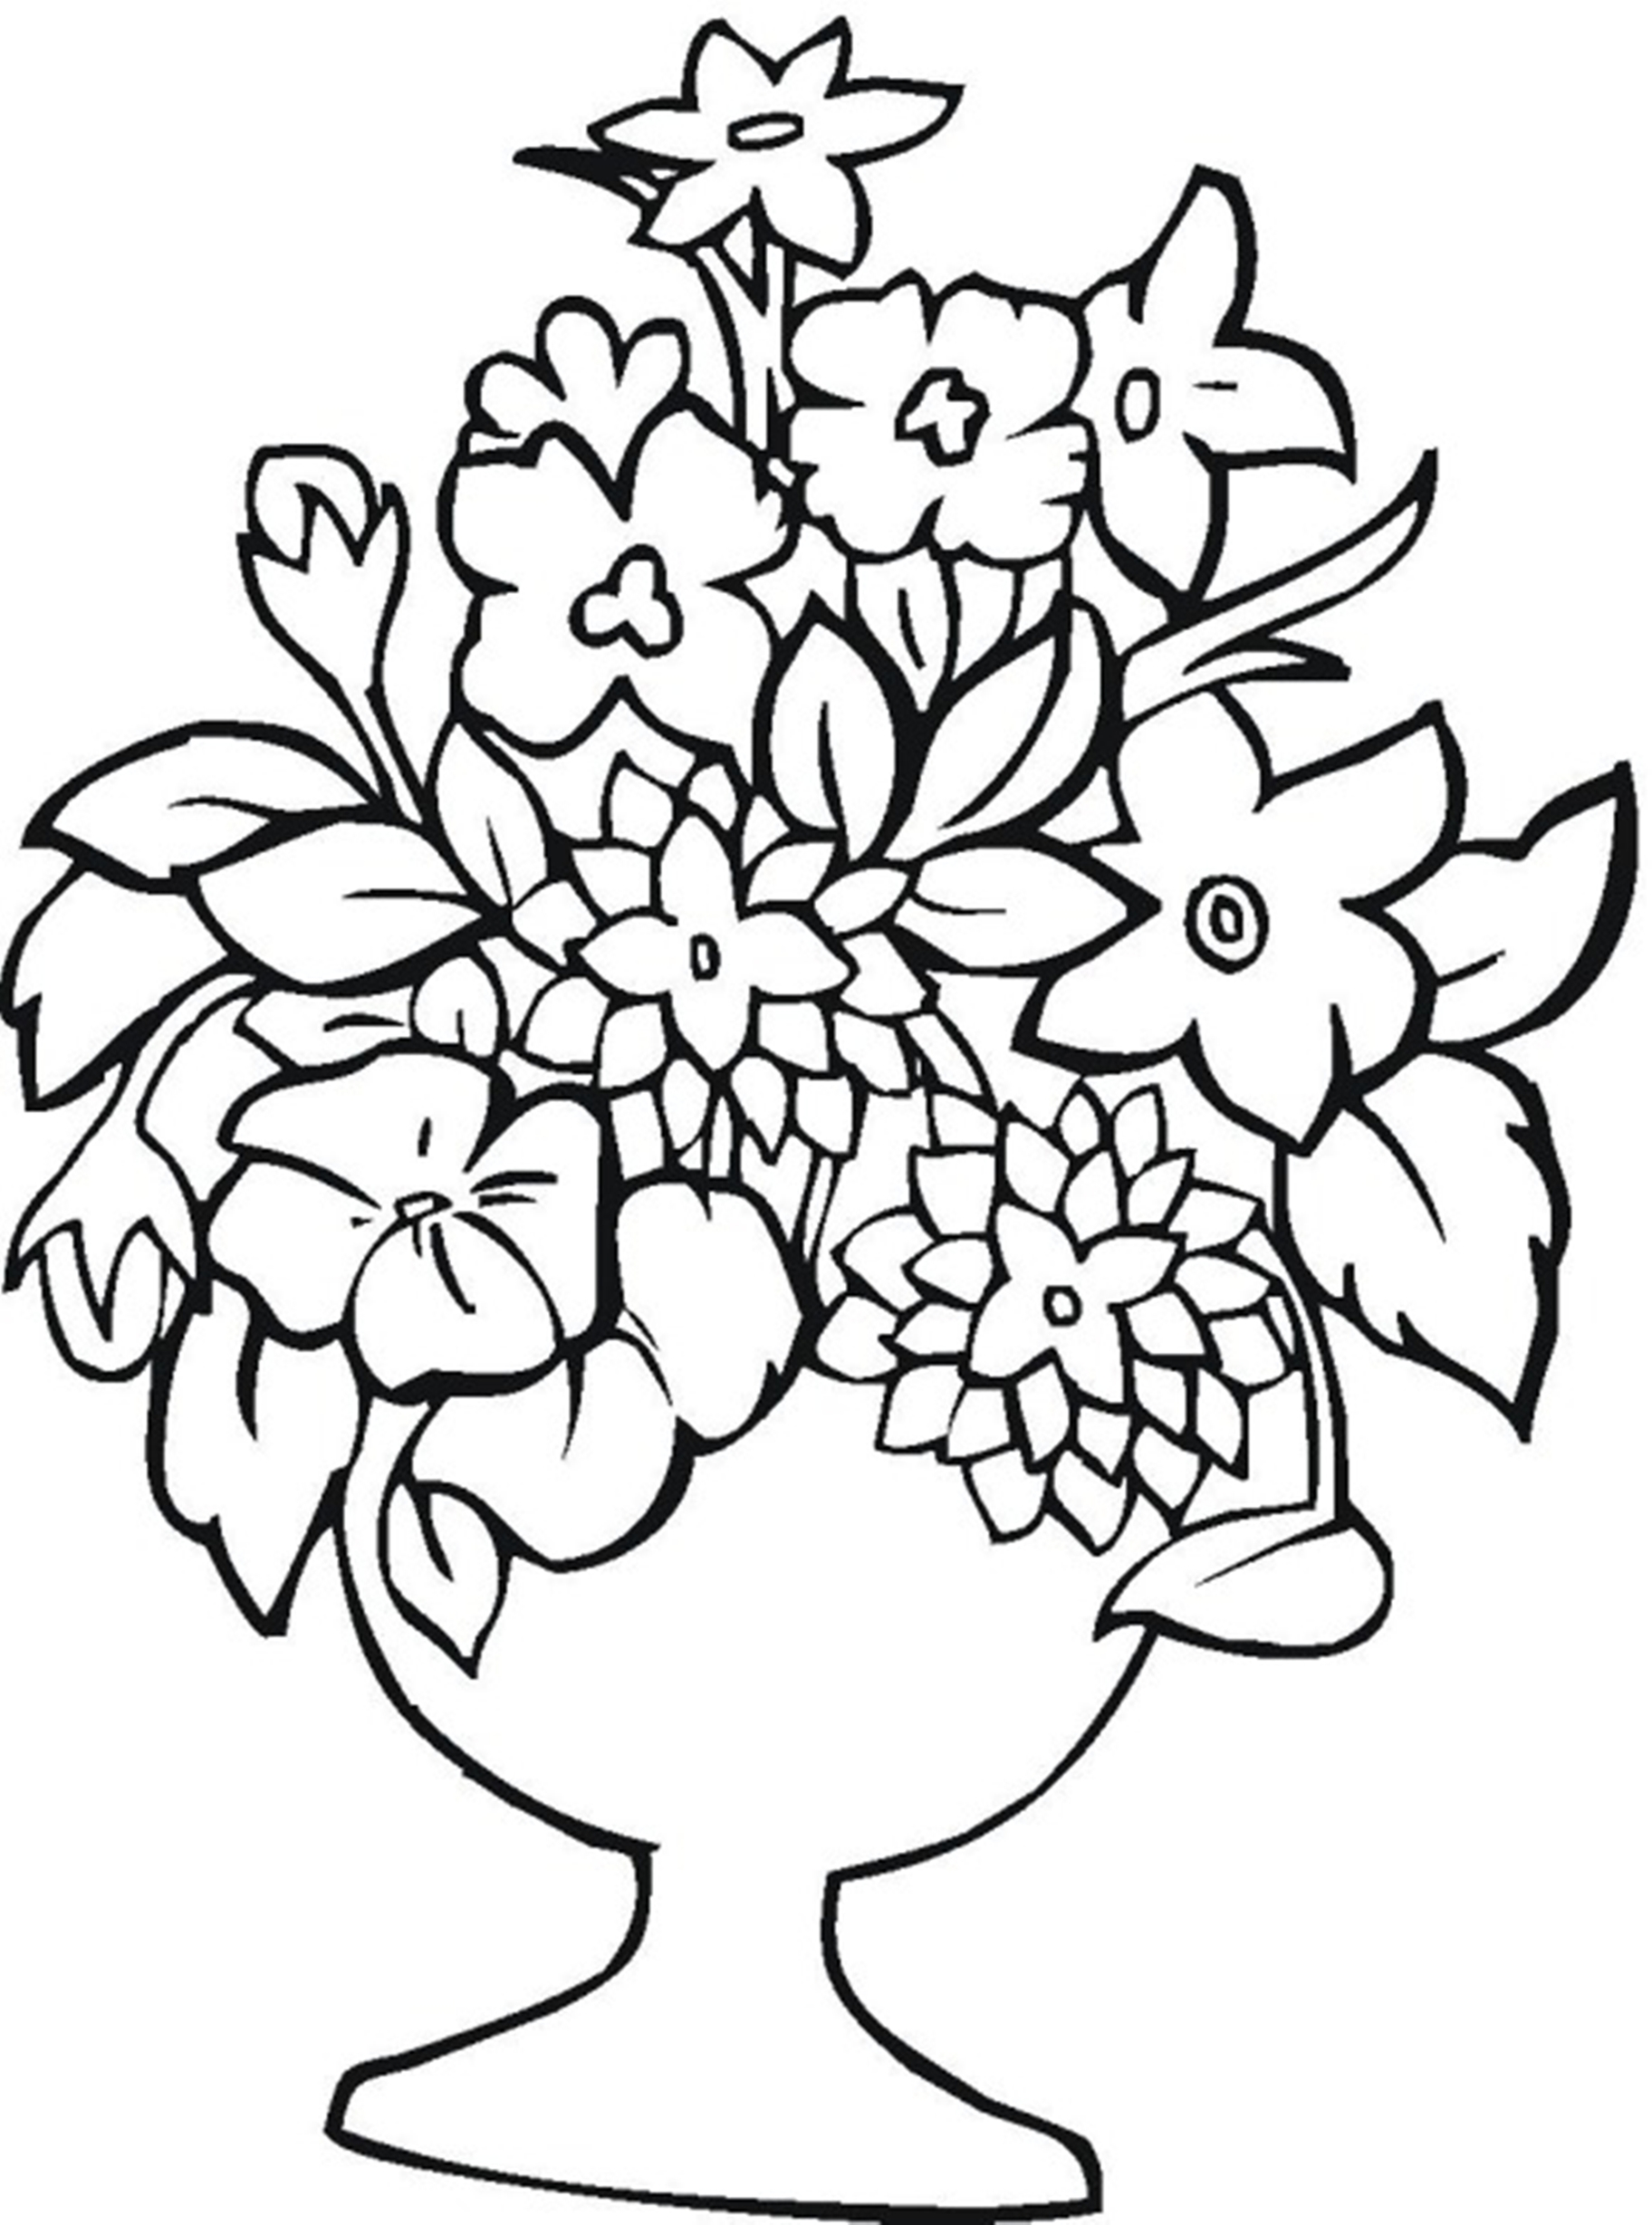 blossoms coloring pages - photo#46